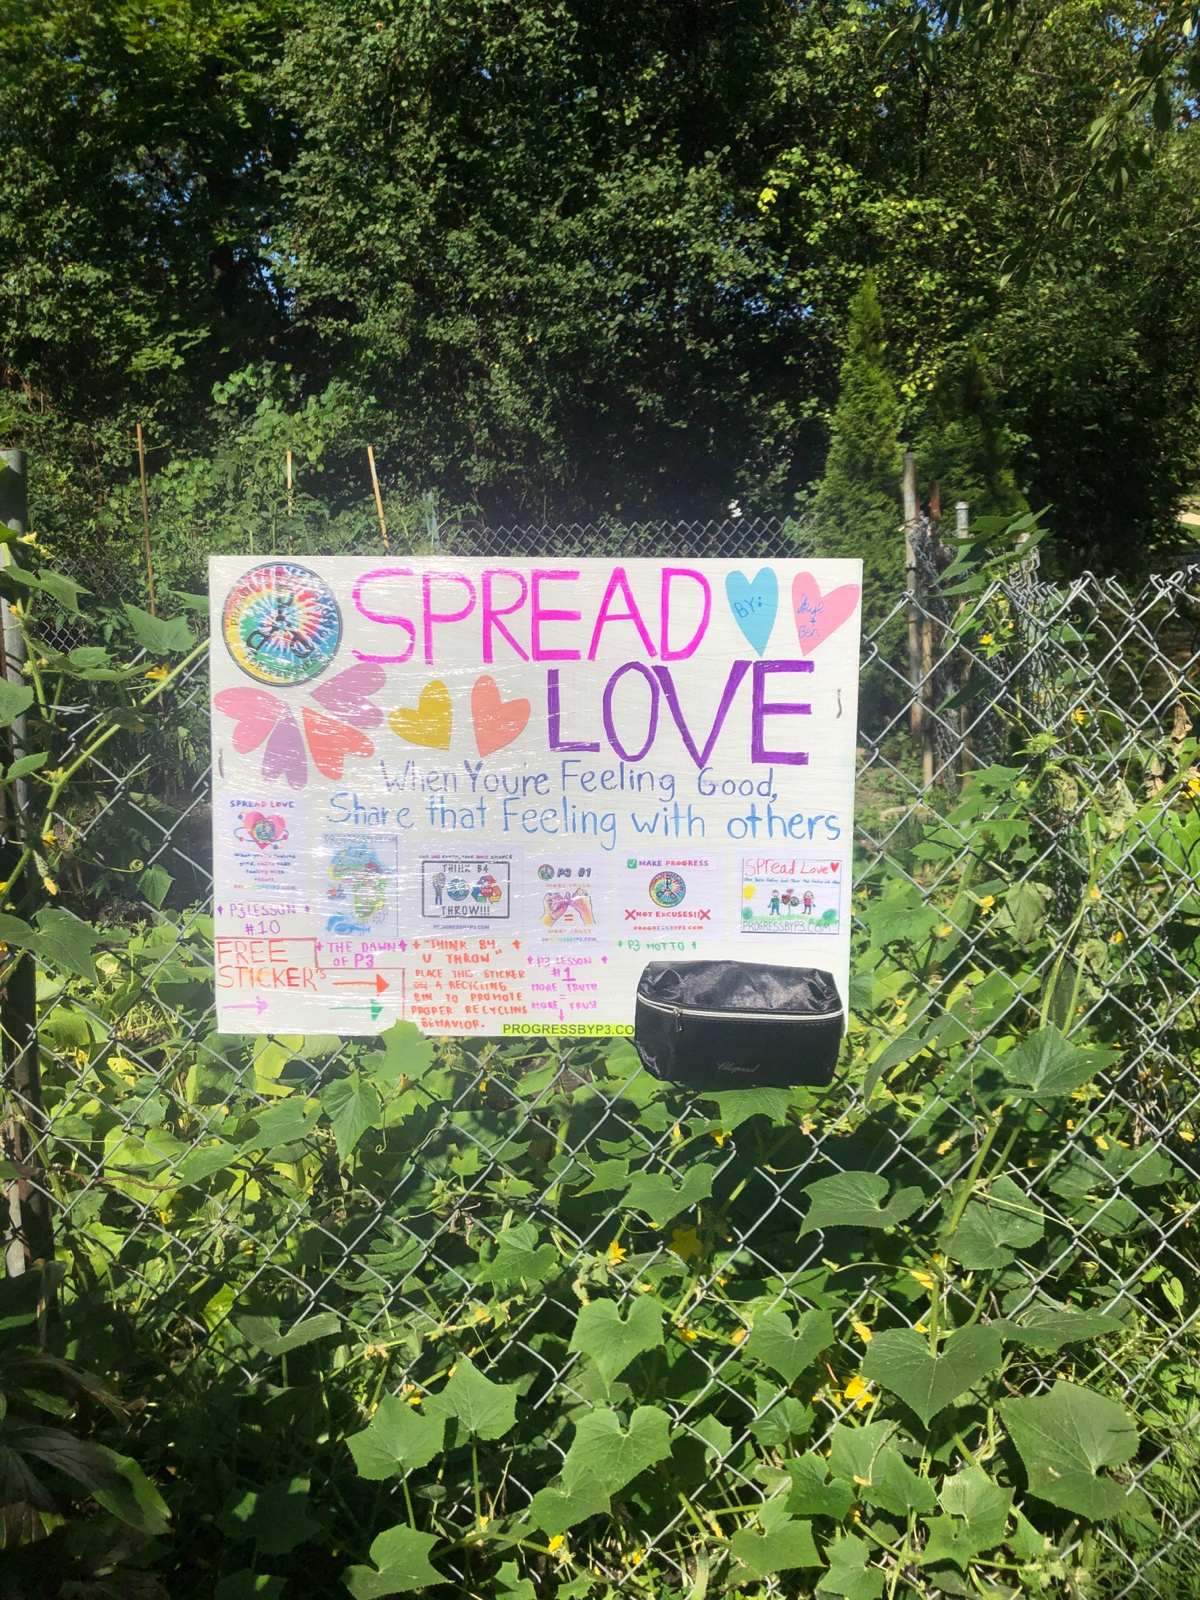 Spread Love: When you're feeling good share that feeling with others